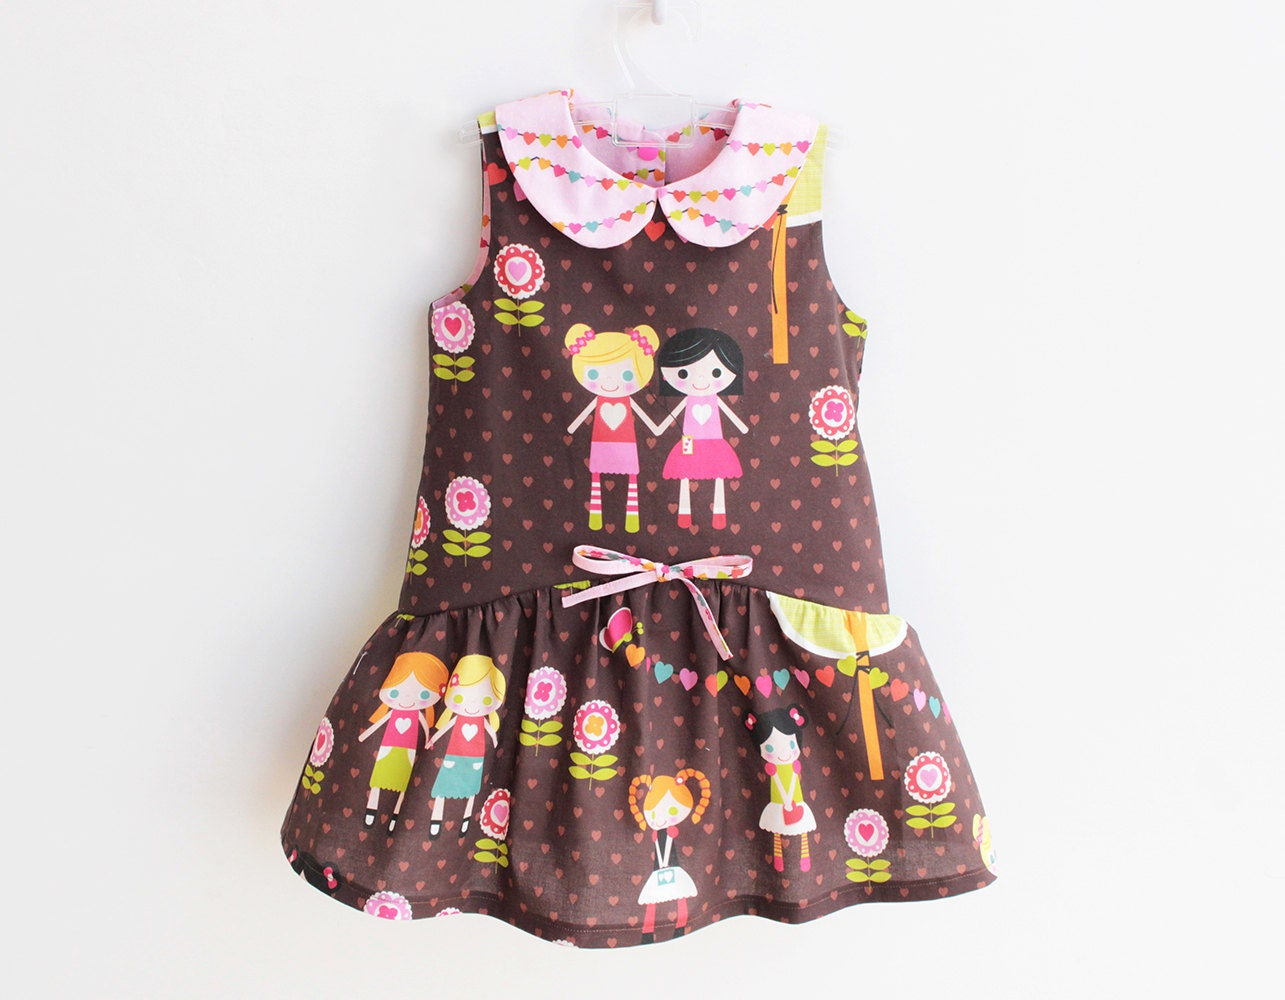 9025a3aa55ba3 BFFs Girl Baby Girl Dress pattern Pdf sewing, Easy Sleeveless Collared  Dress, Peter Pan Collar, newborn 3 6 9 12 18 m 1 2 3 4 5 6 yrs